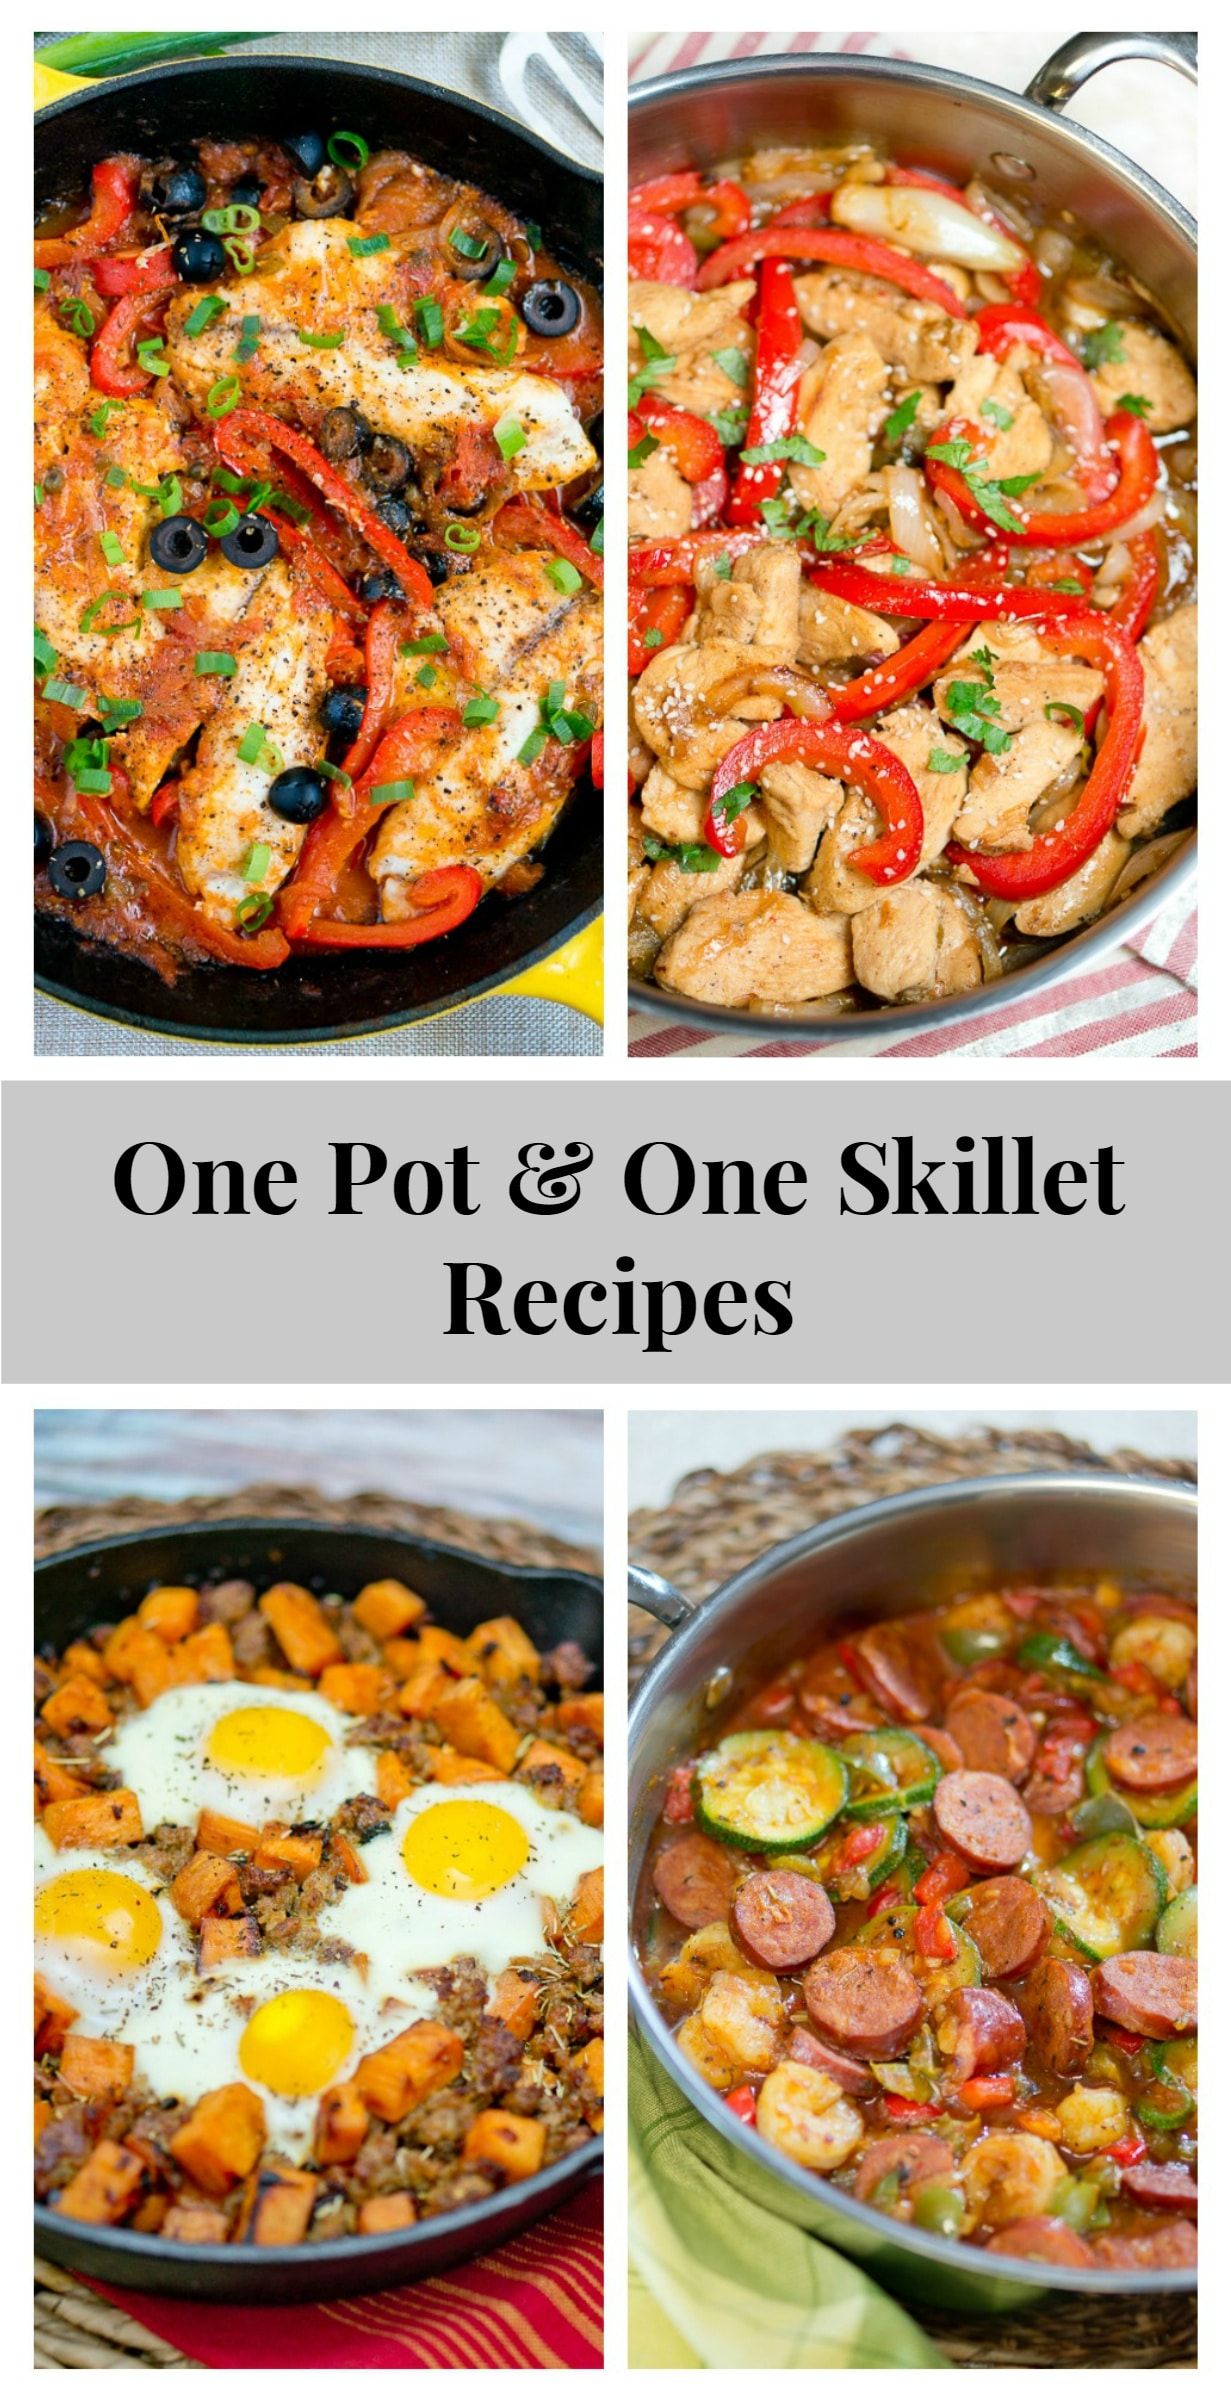 One Pot & One Skillet Recipes